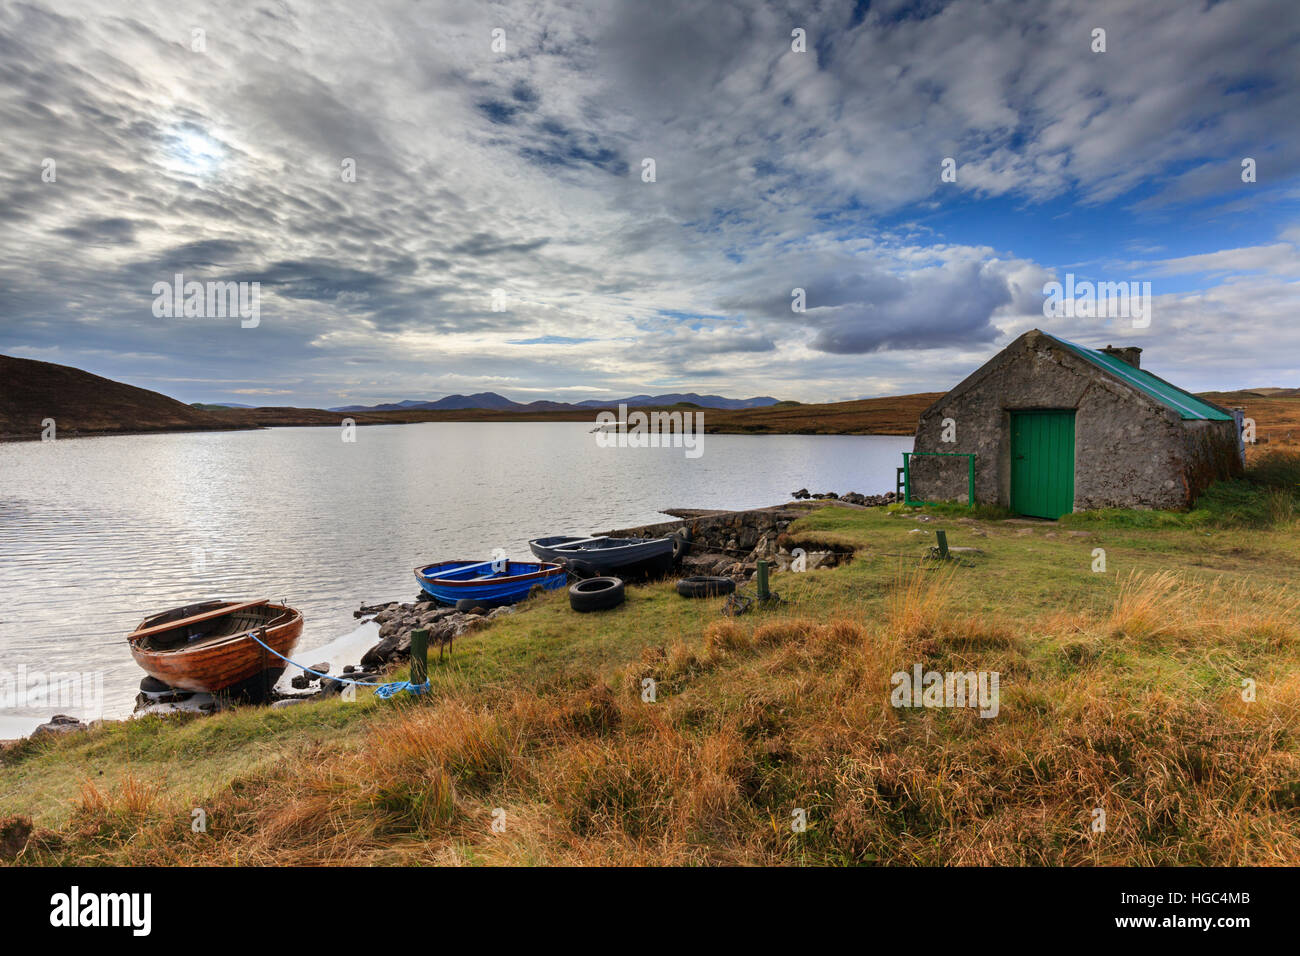 Loch Bhaltois on the Isle of Harris in the Outer Hebrides. Stock Photo